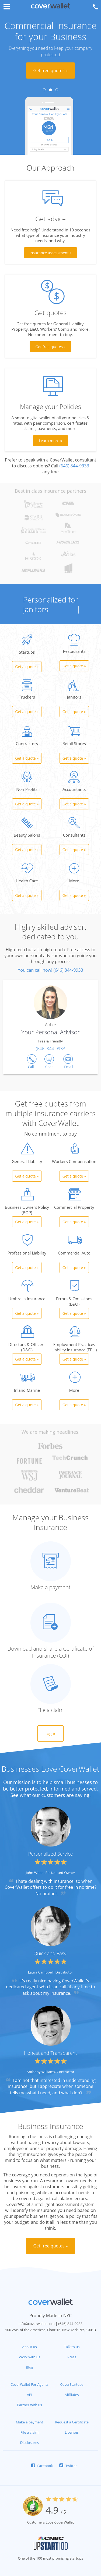 Example of Design for Finance, Insurance, Mobile Landing Page by coverwallet.com | Mobile Landing Page Design